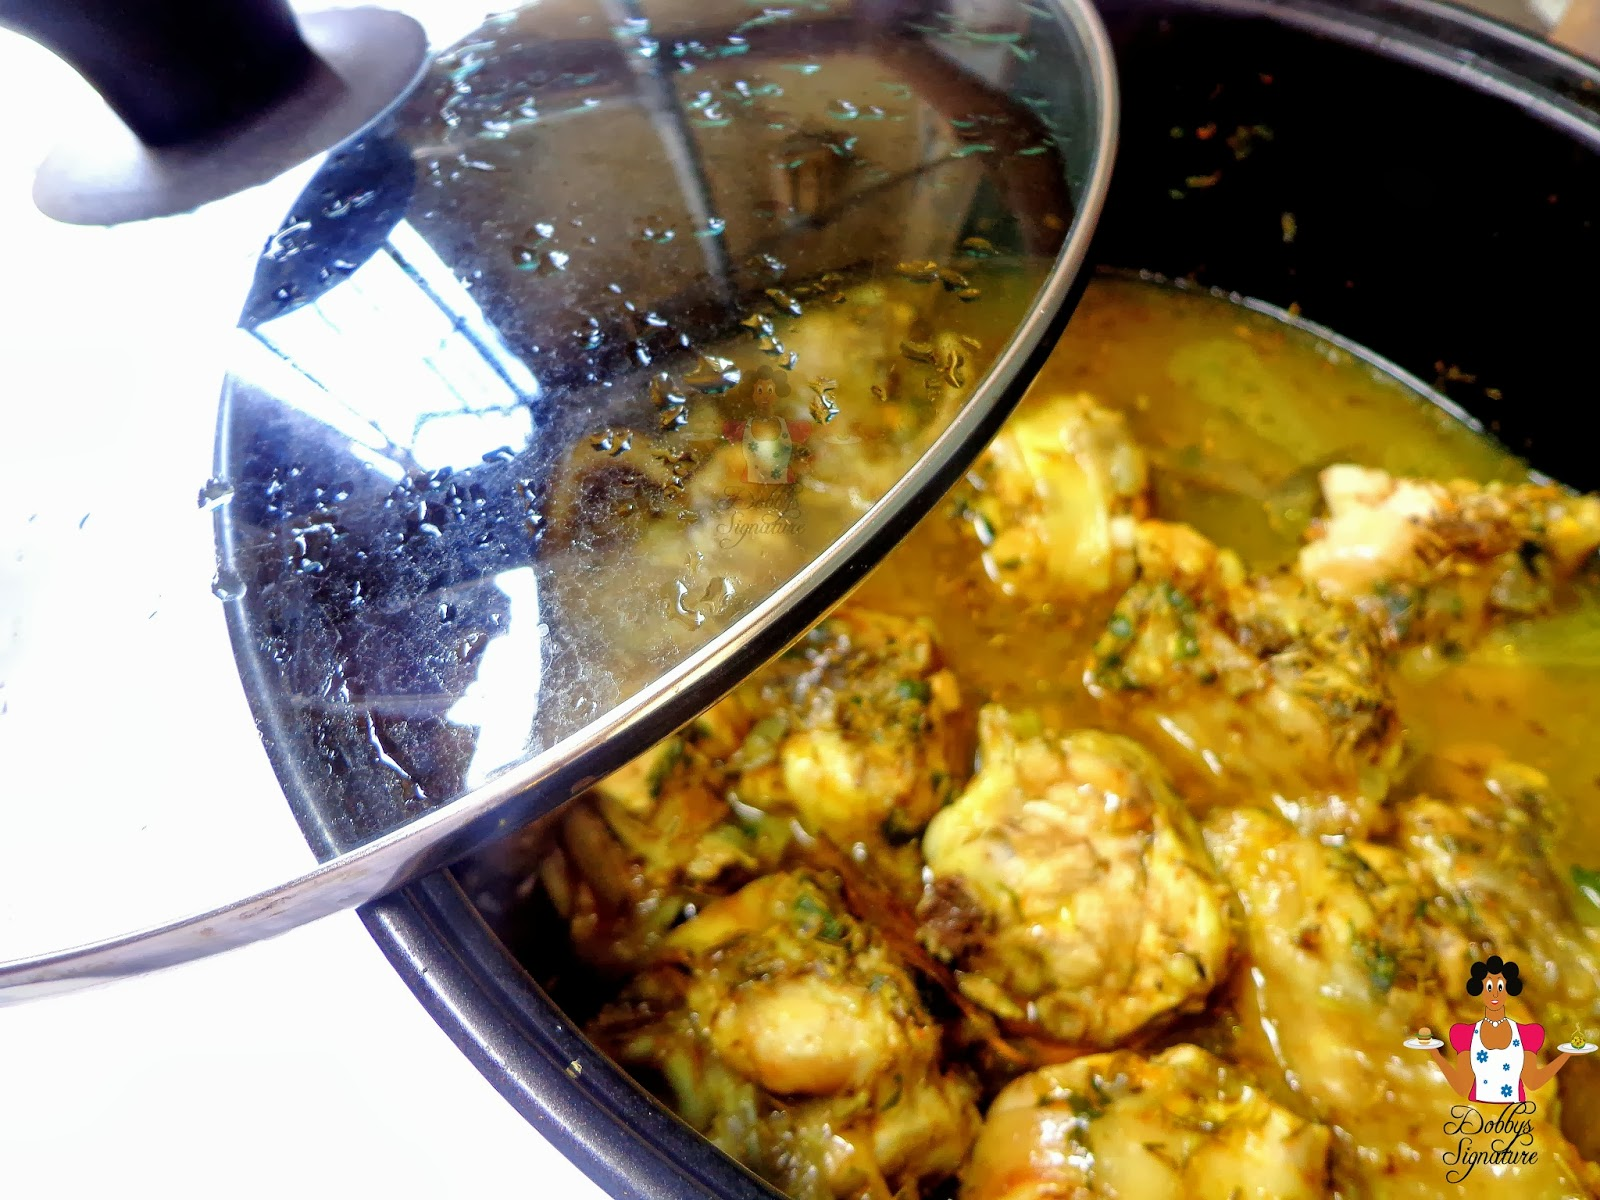 Dobbys signature nigerian food blog i nigerian food recipes i just like chicken stock beef stock fish stock turkey stock is used as a base in most nigerian cooking forumfinder Images